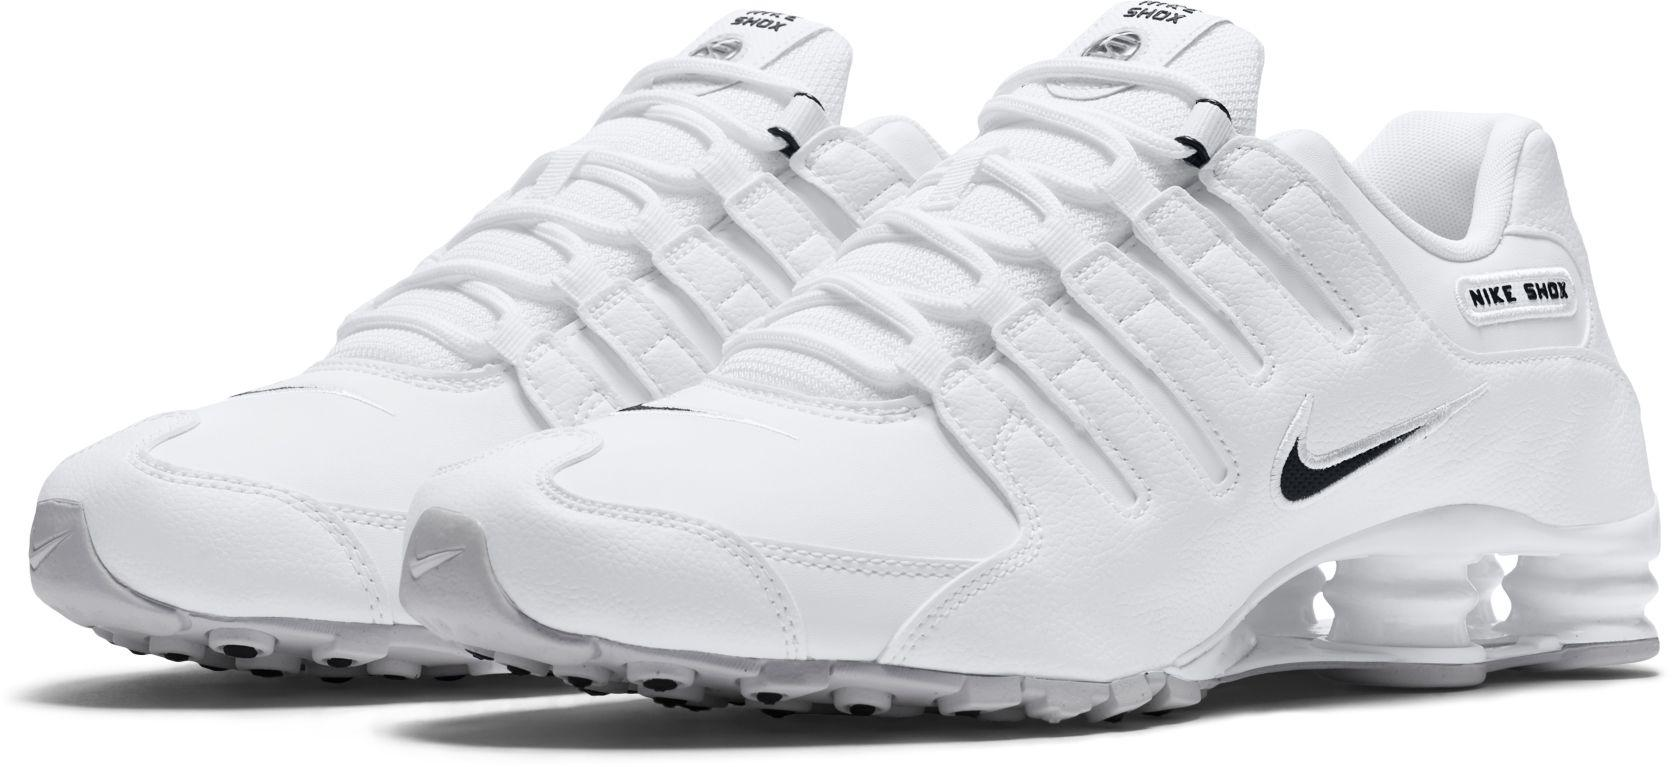 b0bfd8d32b59 Lyst - Nike Shox Nz Shoes in White for Men